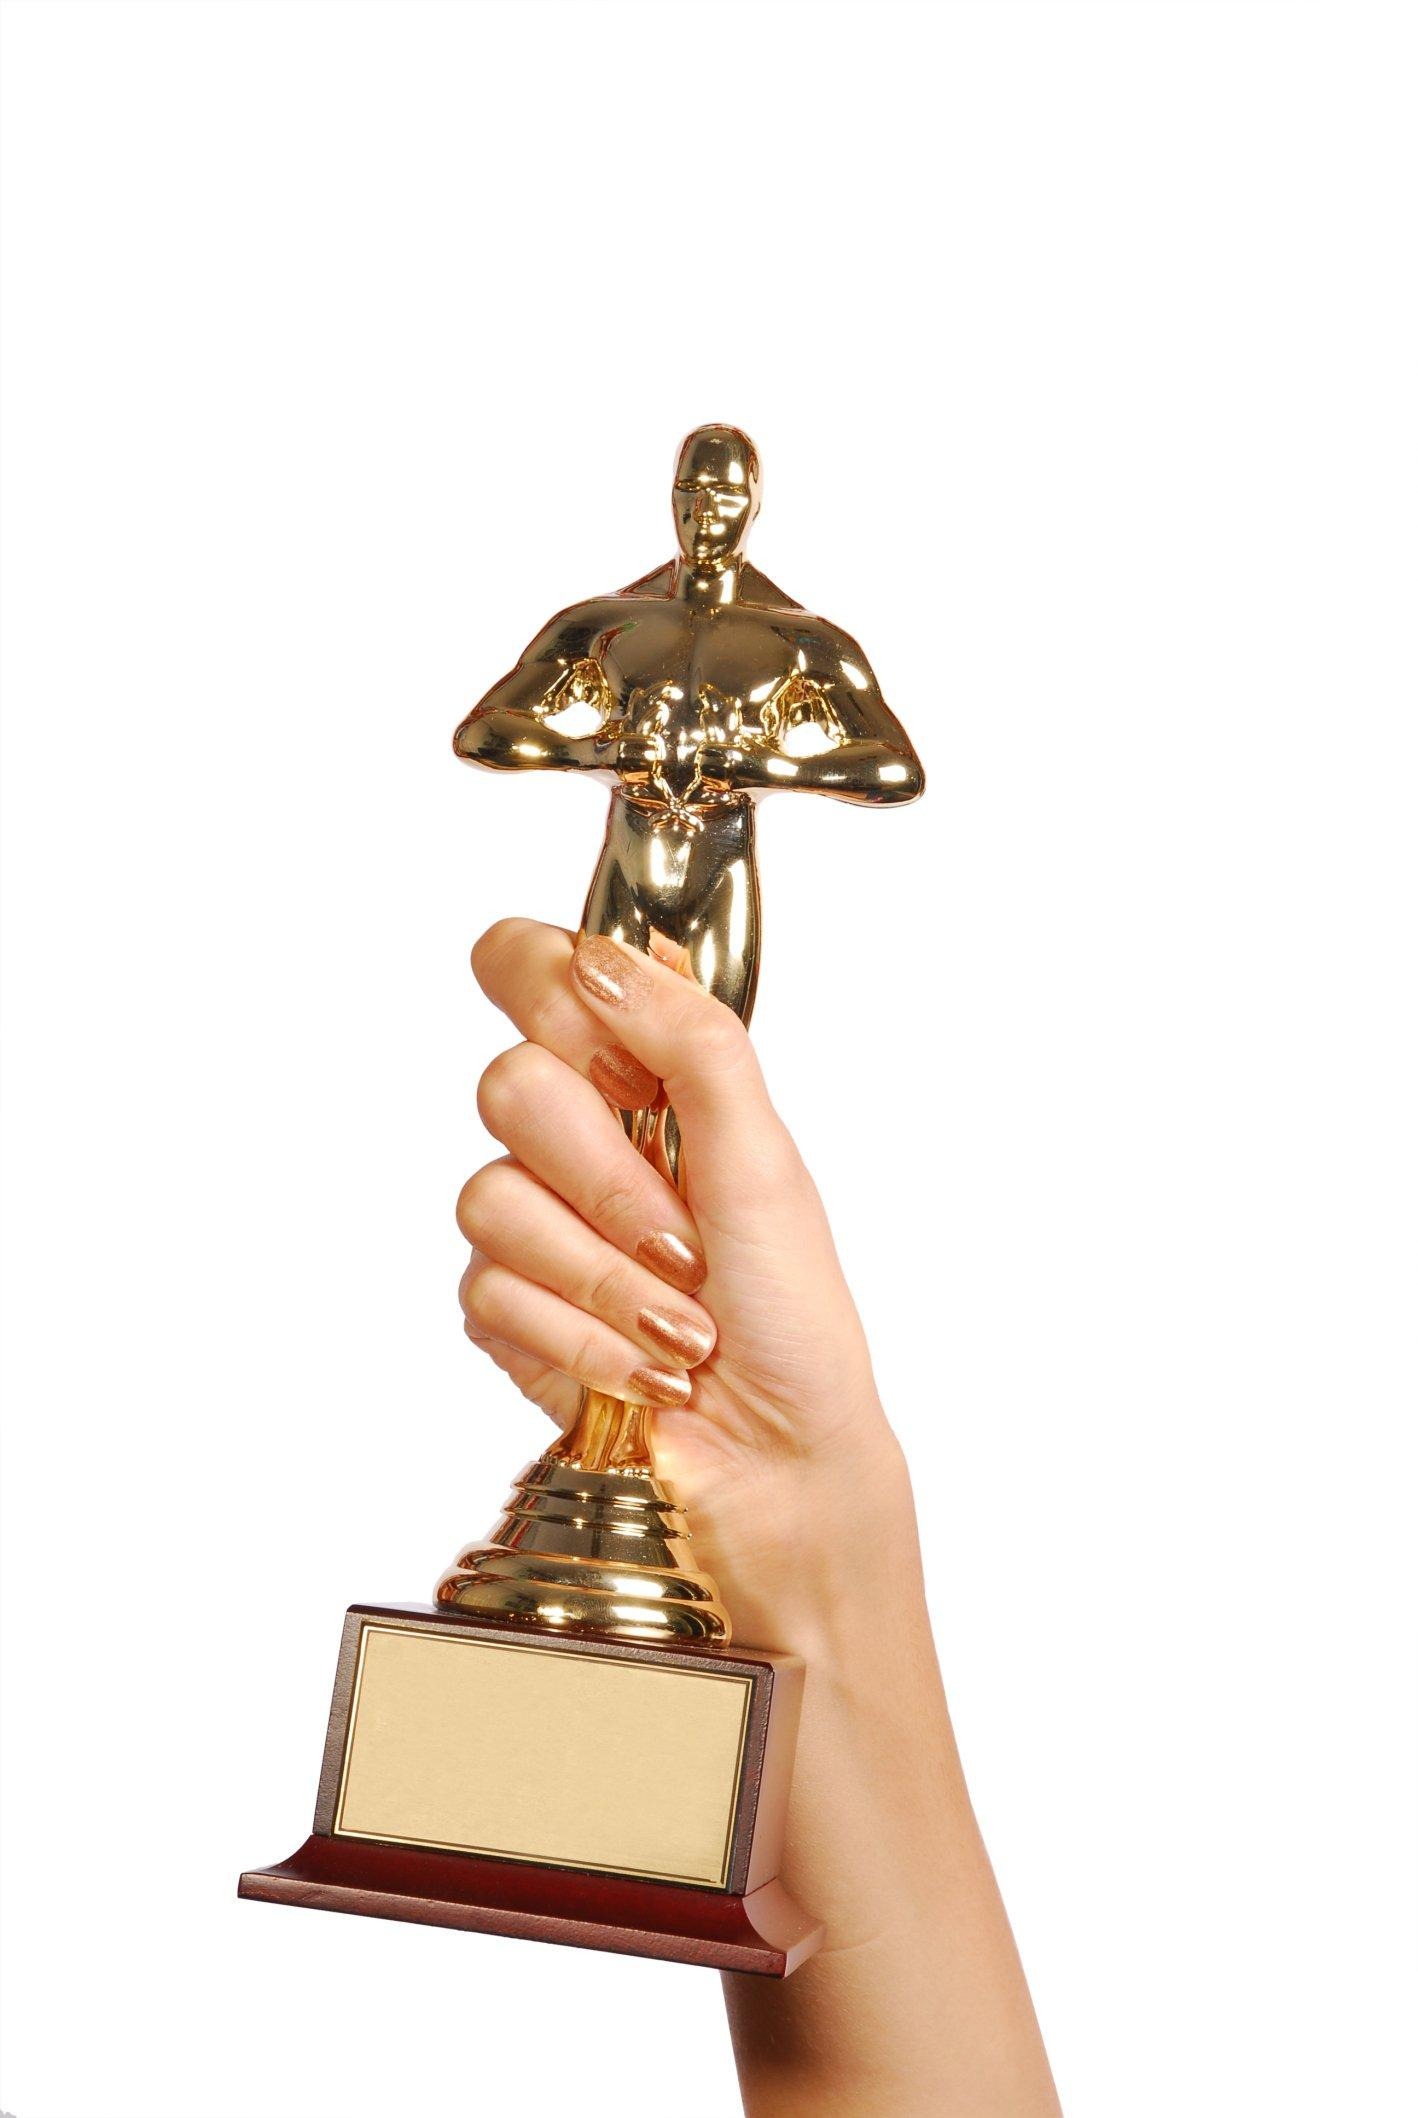 Pictures of oscar awards